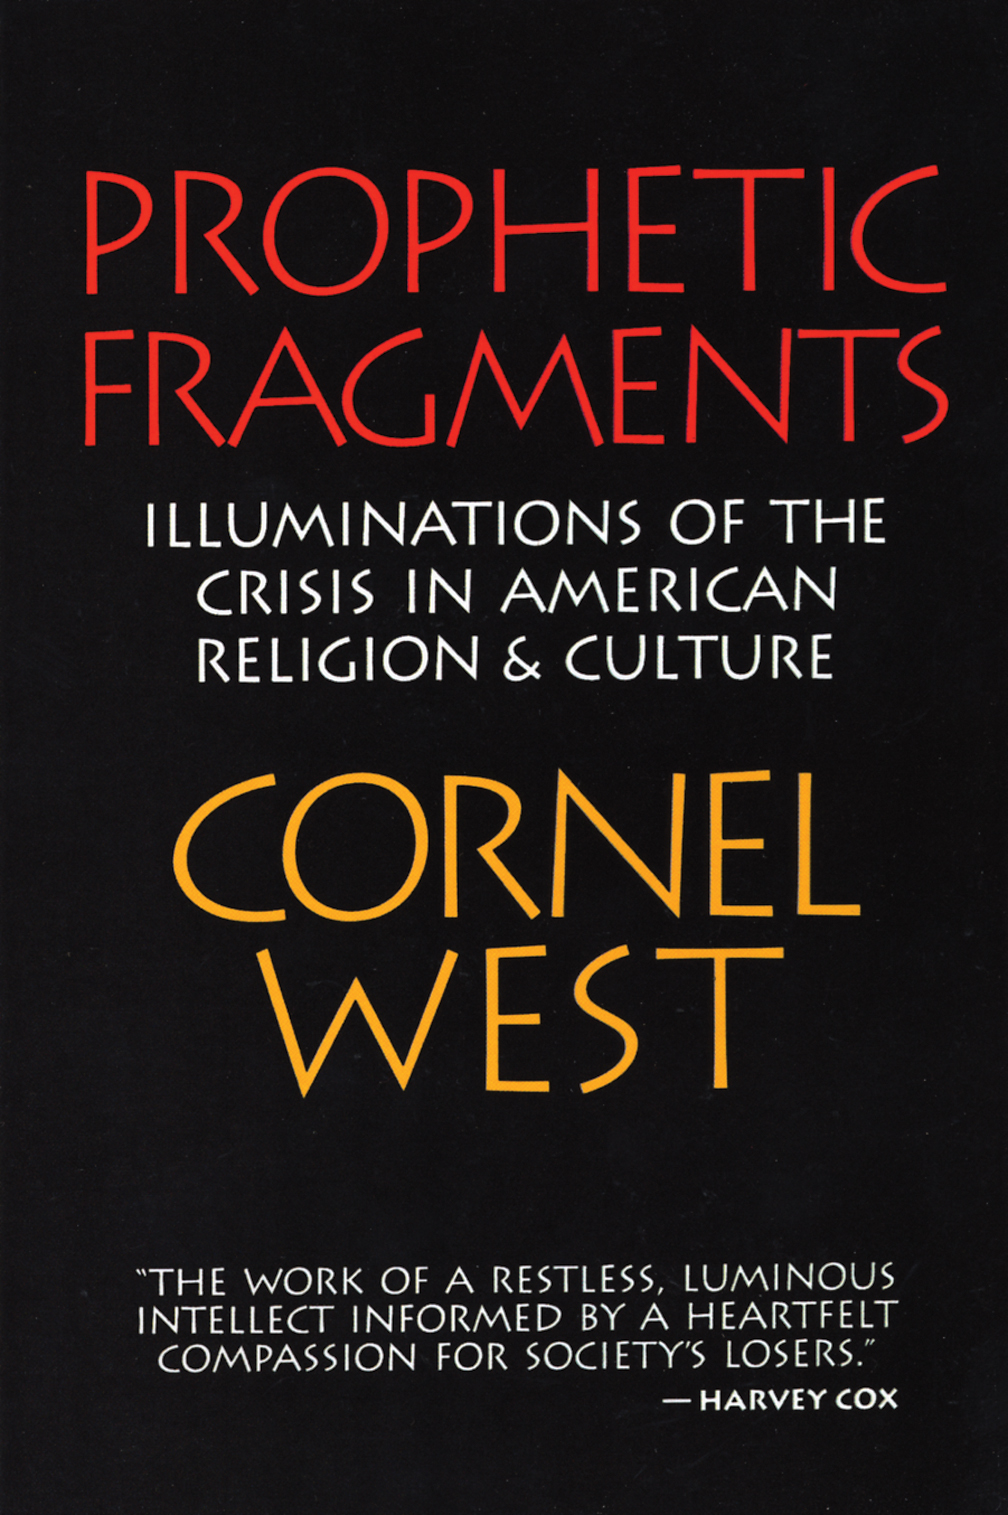 prophetic fragments cornel west eerdmans share